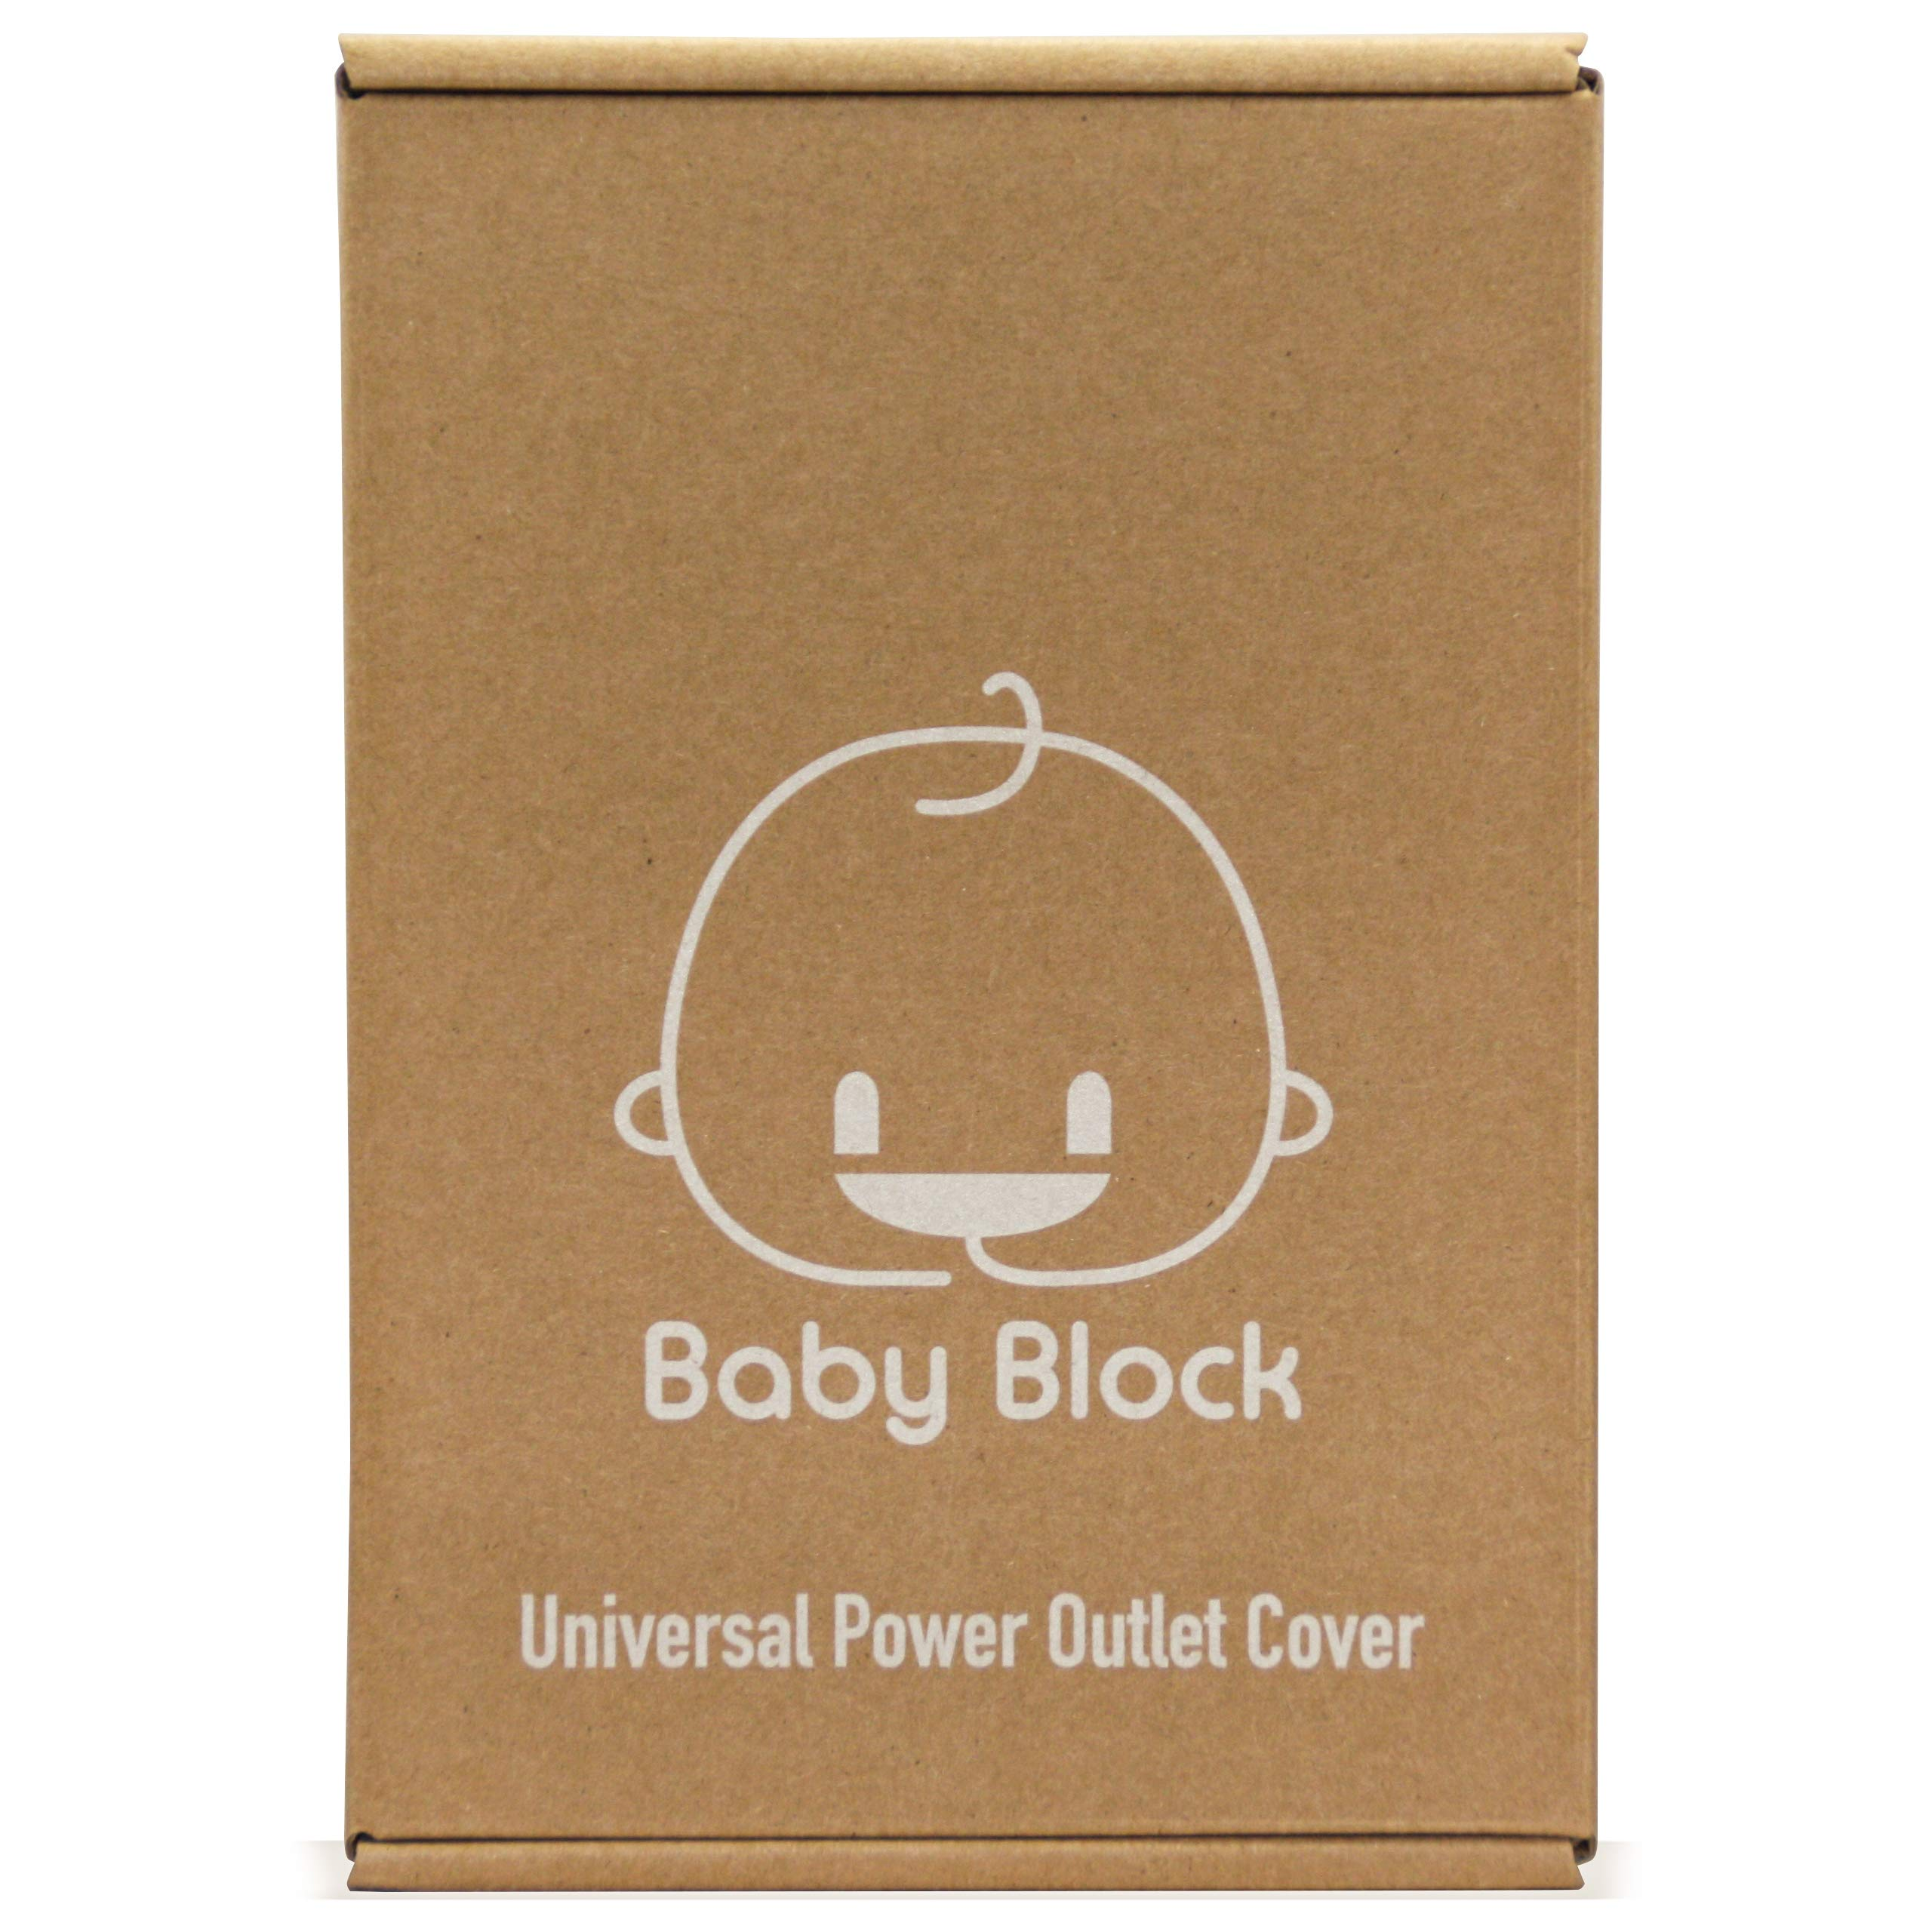 New: Universal Electric Outlet Cover | Child Safety & Baby Proofing | Protect Power Outlets, Wall Sockets and Plugs by Baby Block (Image #8)